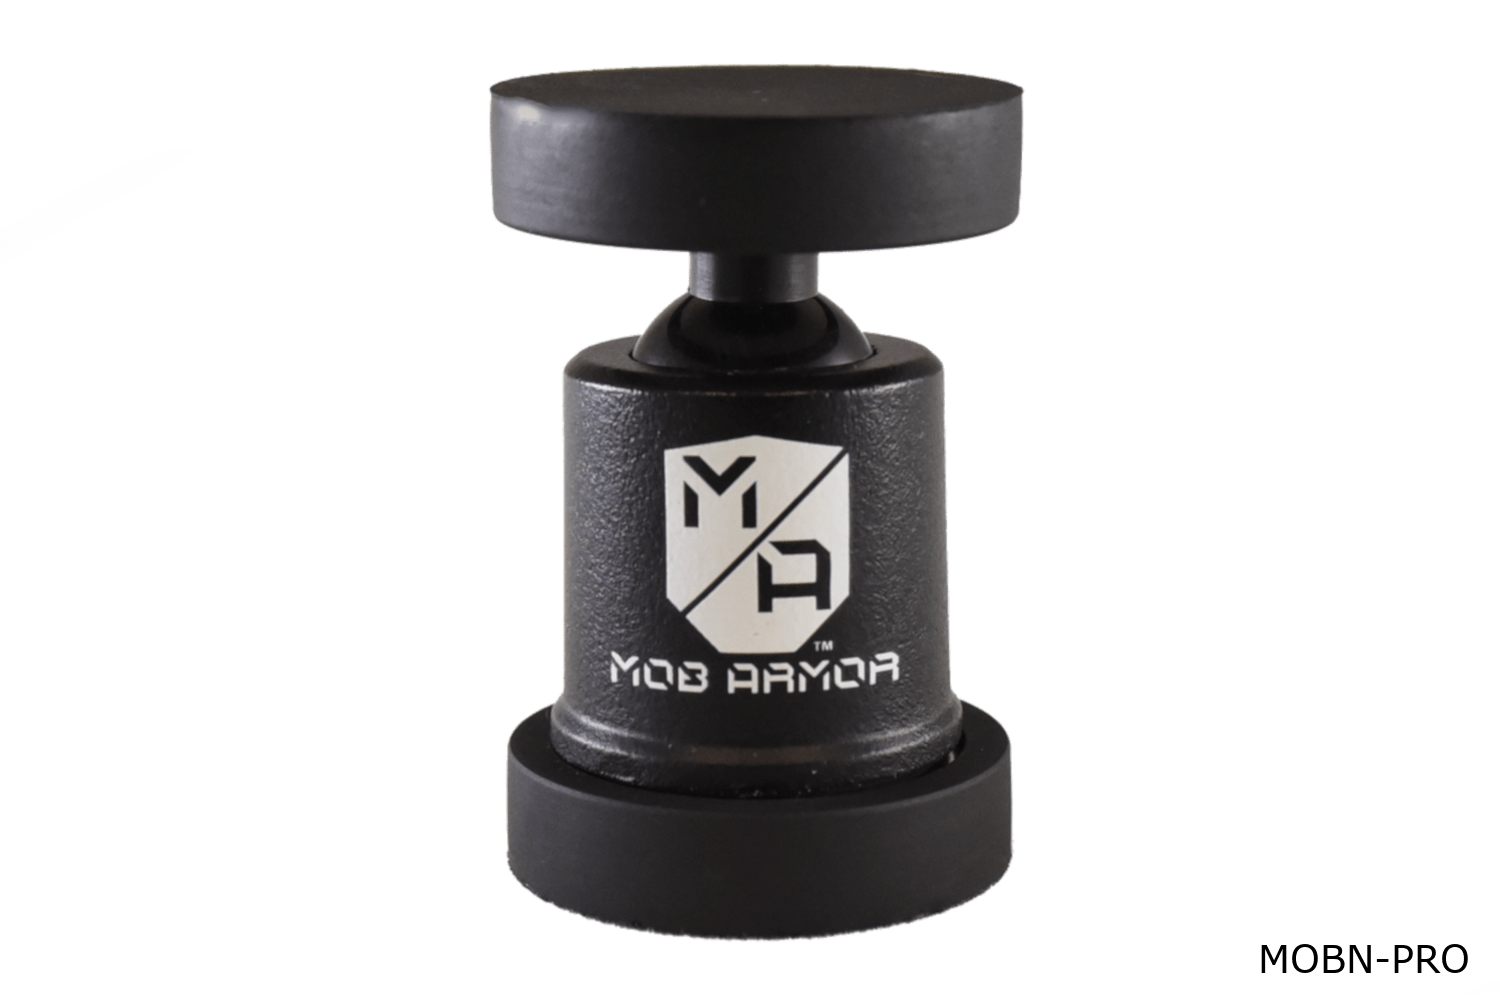 mob armor accessories MOBN-PRO-BLK